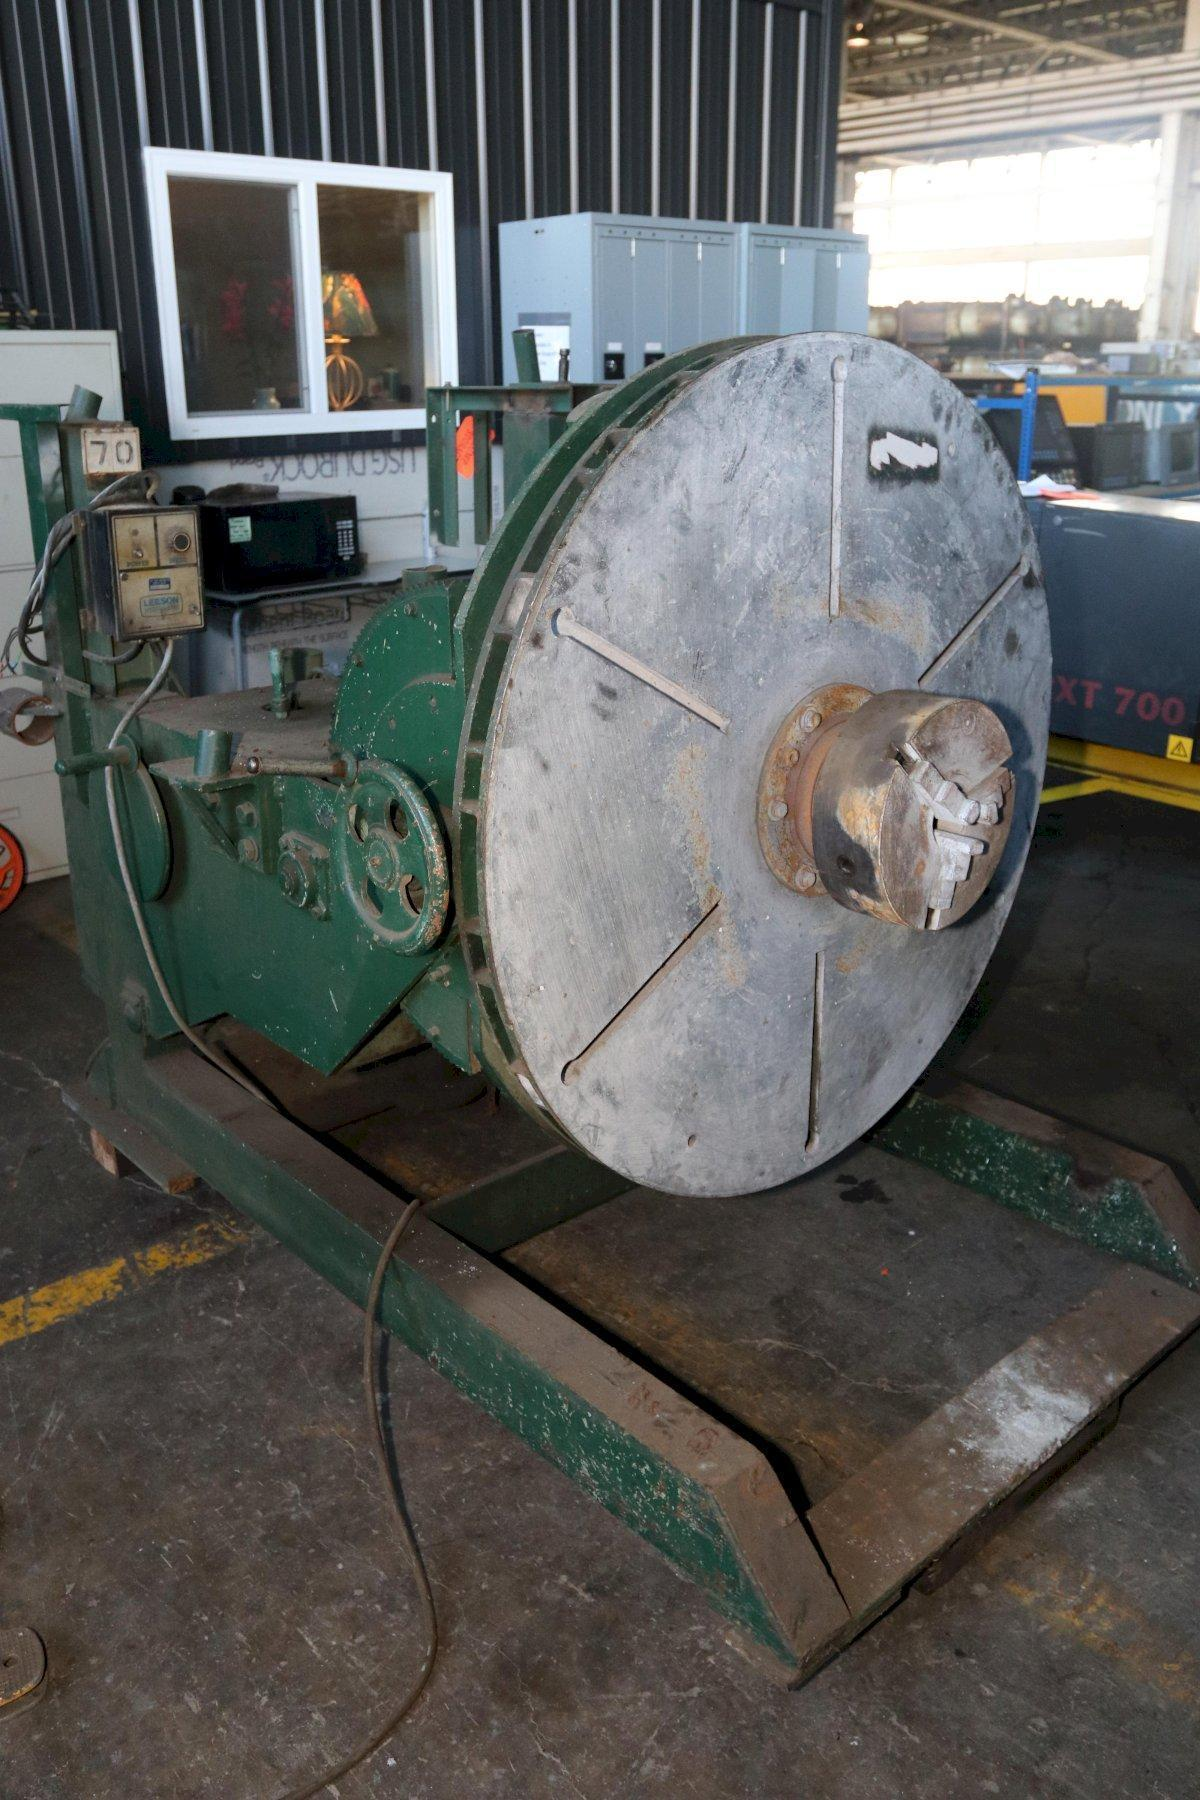 Lovat Rotating Welding Positioner